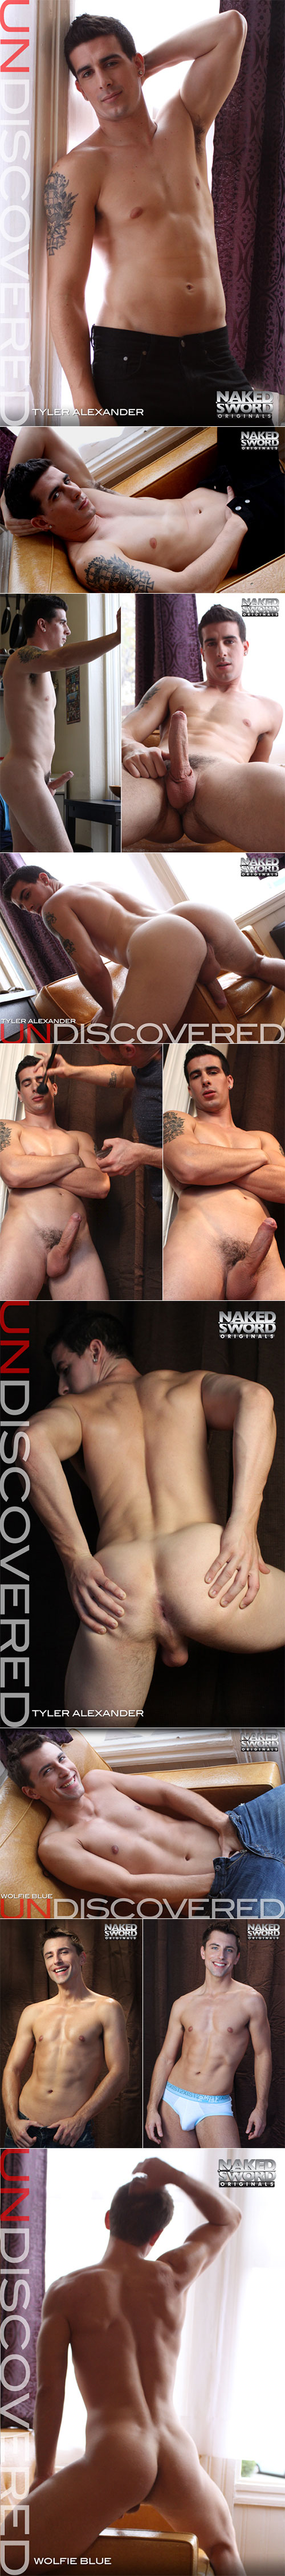 "NakedSword Originals: Tyler Alexander and Wolfie Blue fuck each other in ""Undiscovered"""